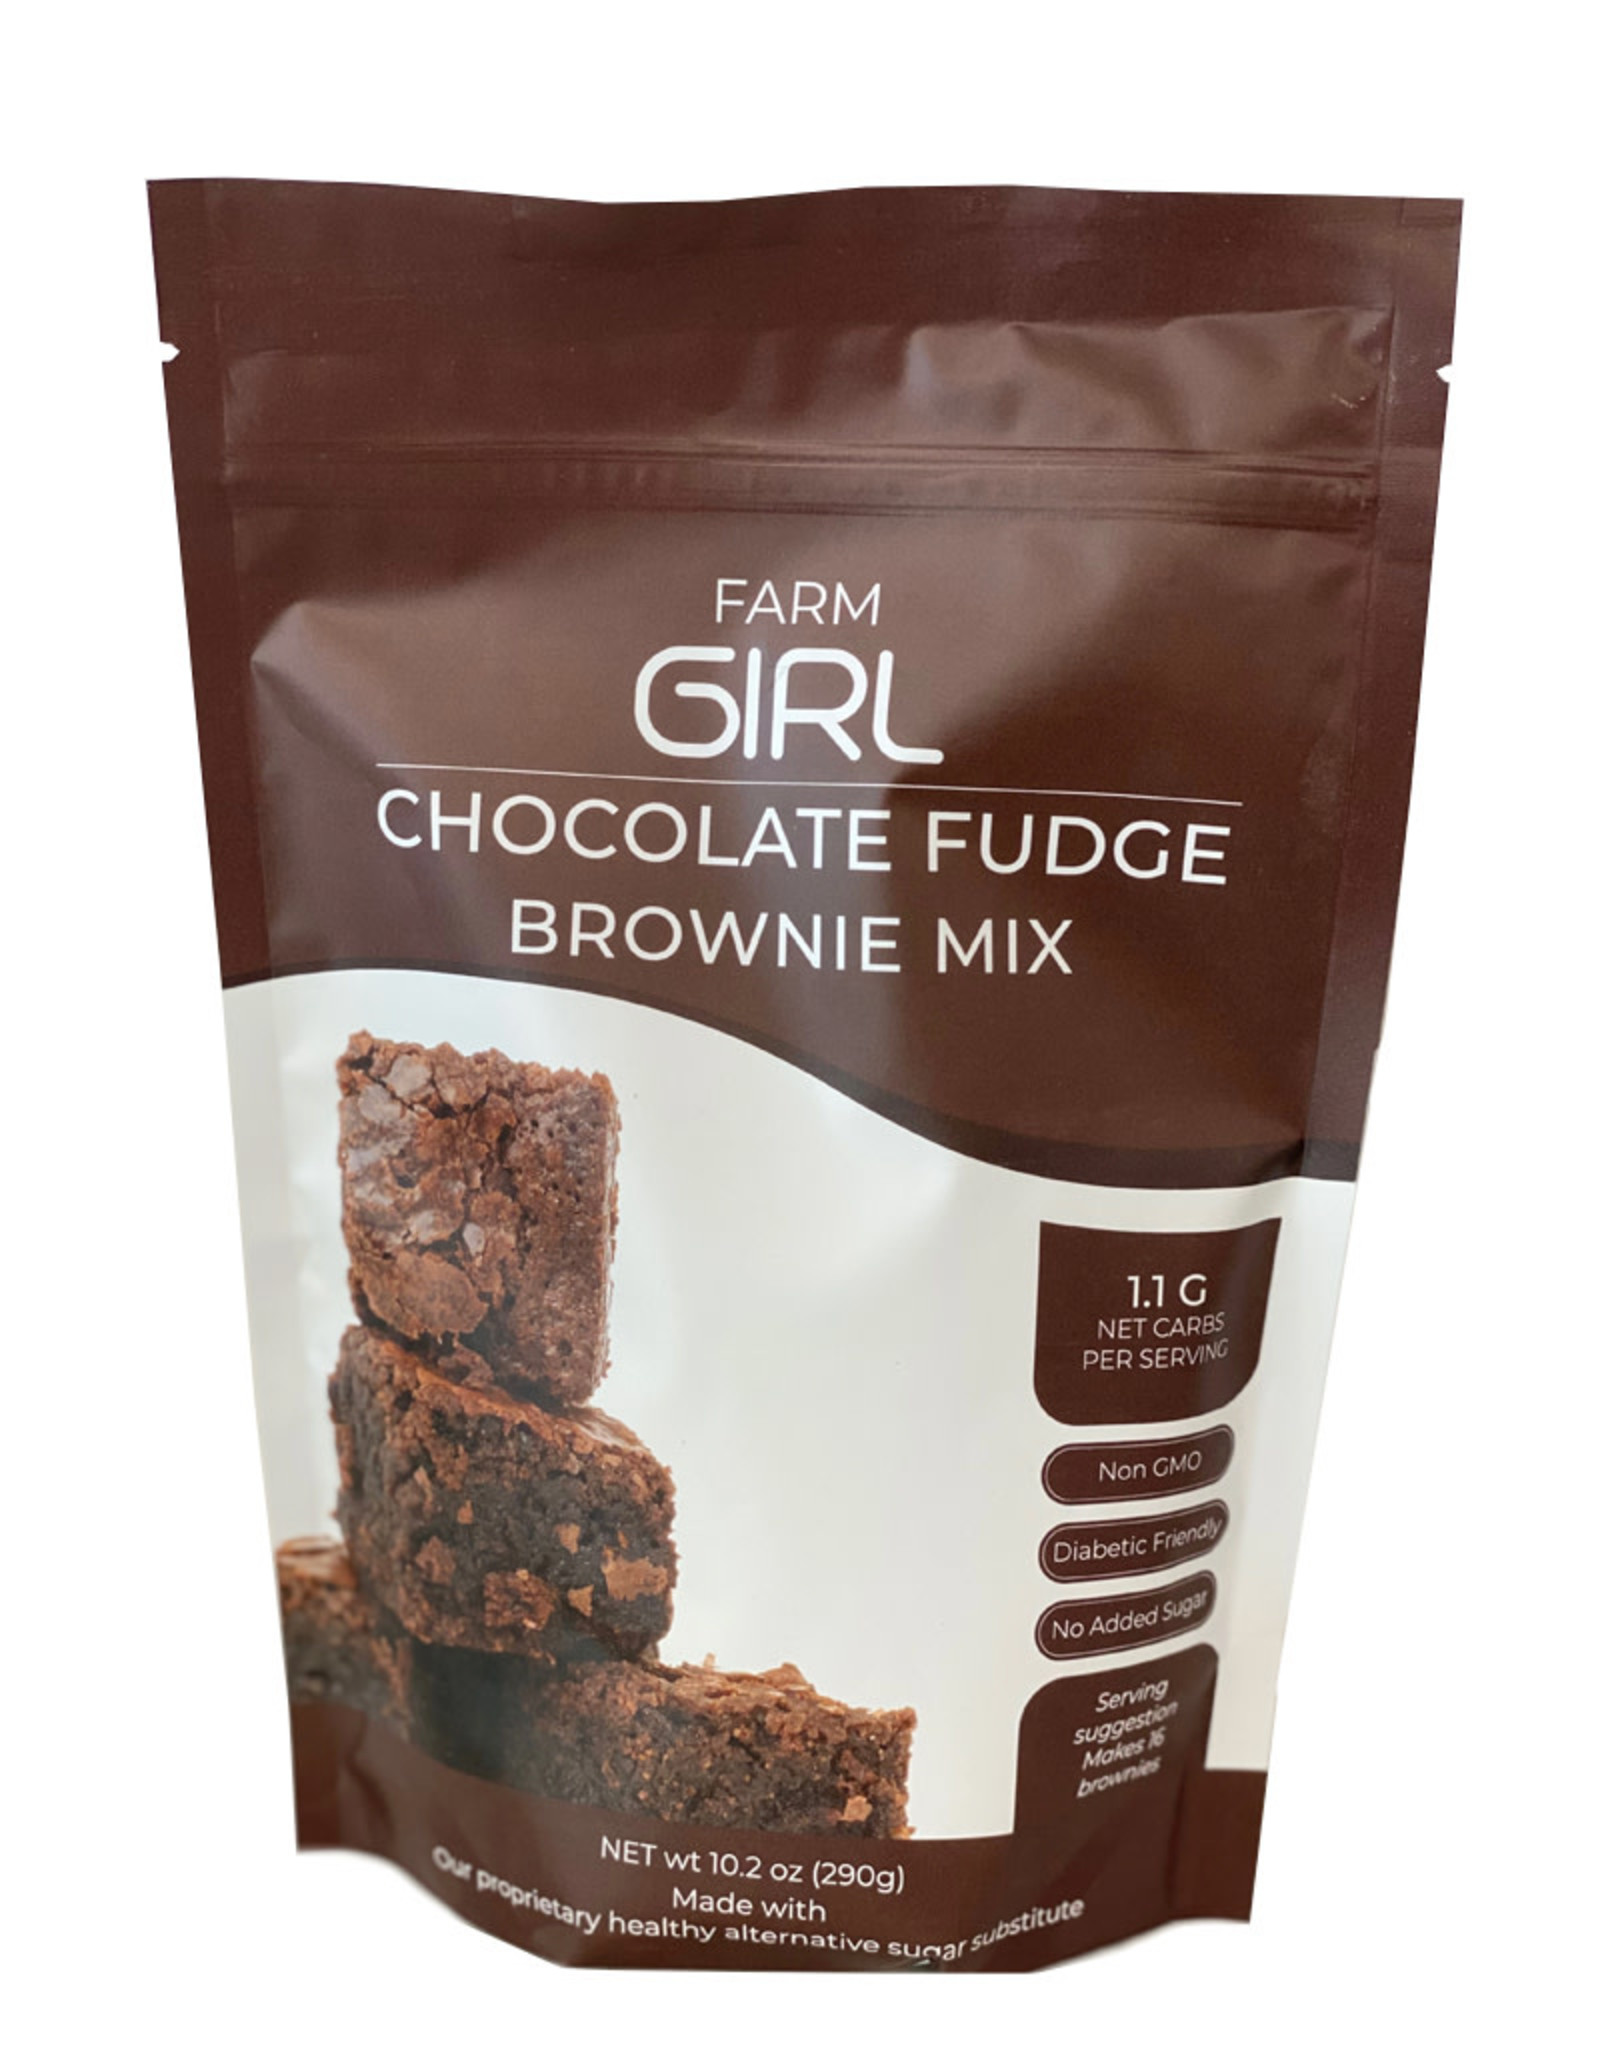 Farm Girl Farm Girl- Brownie Mix, Chocolate Fudge